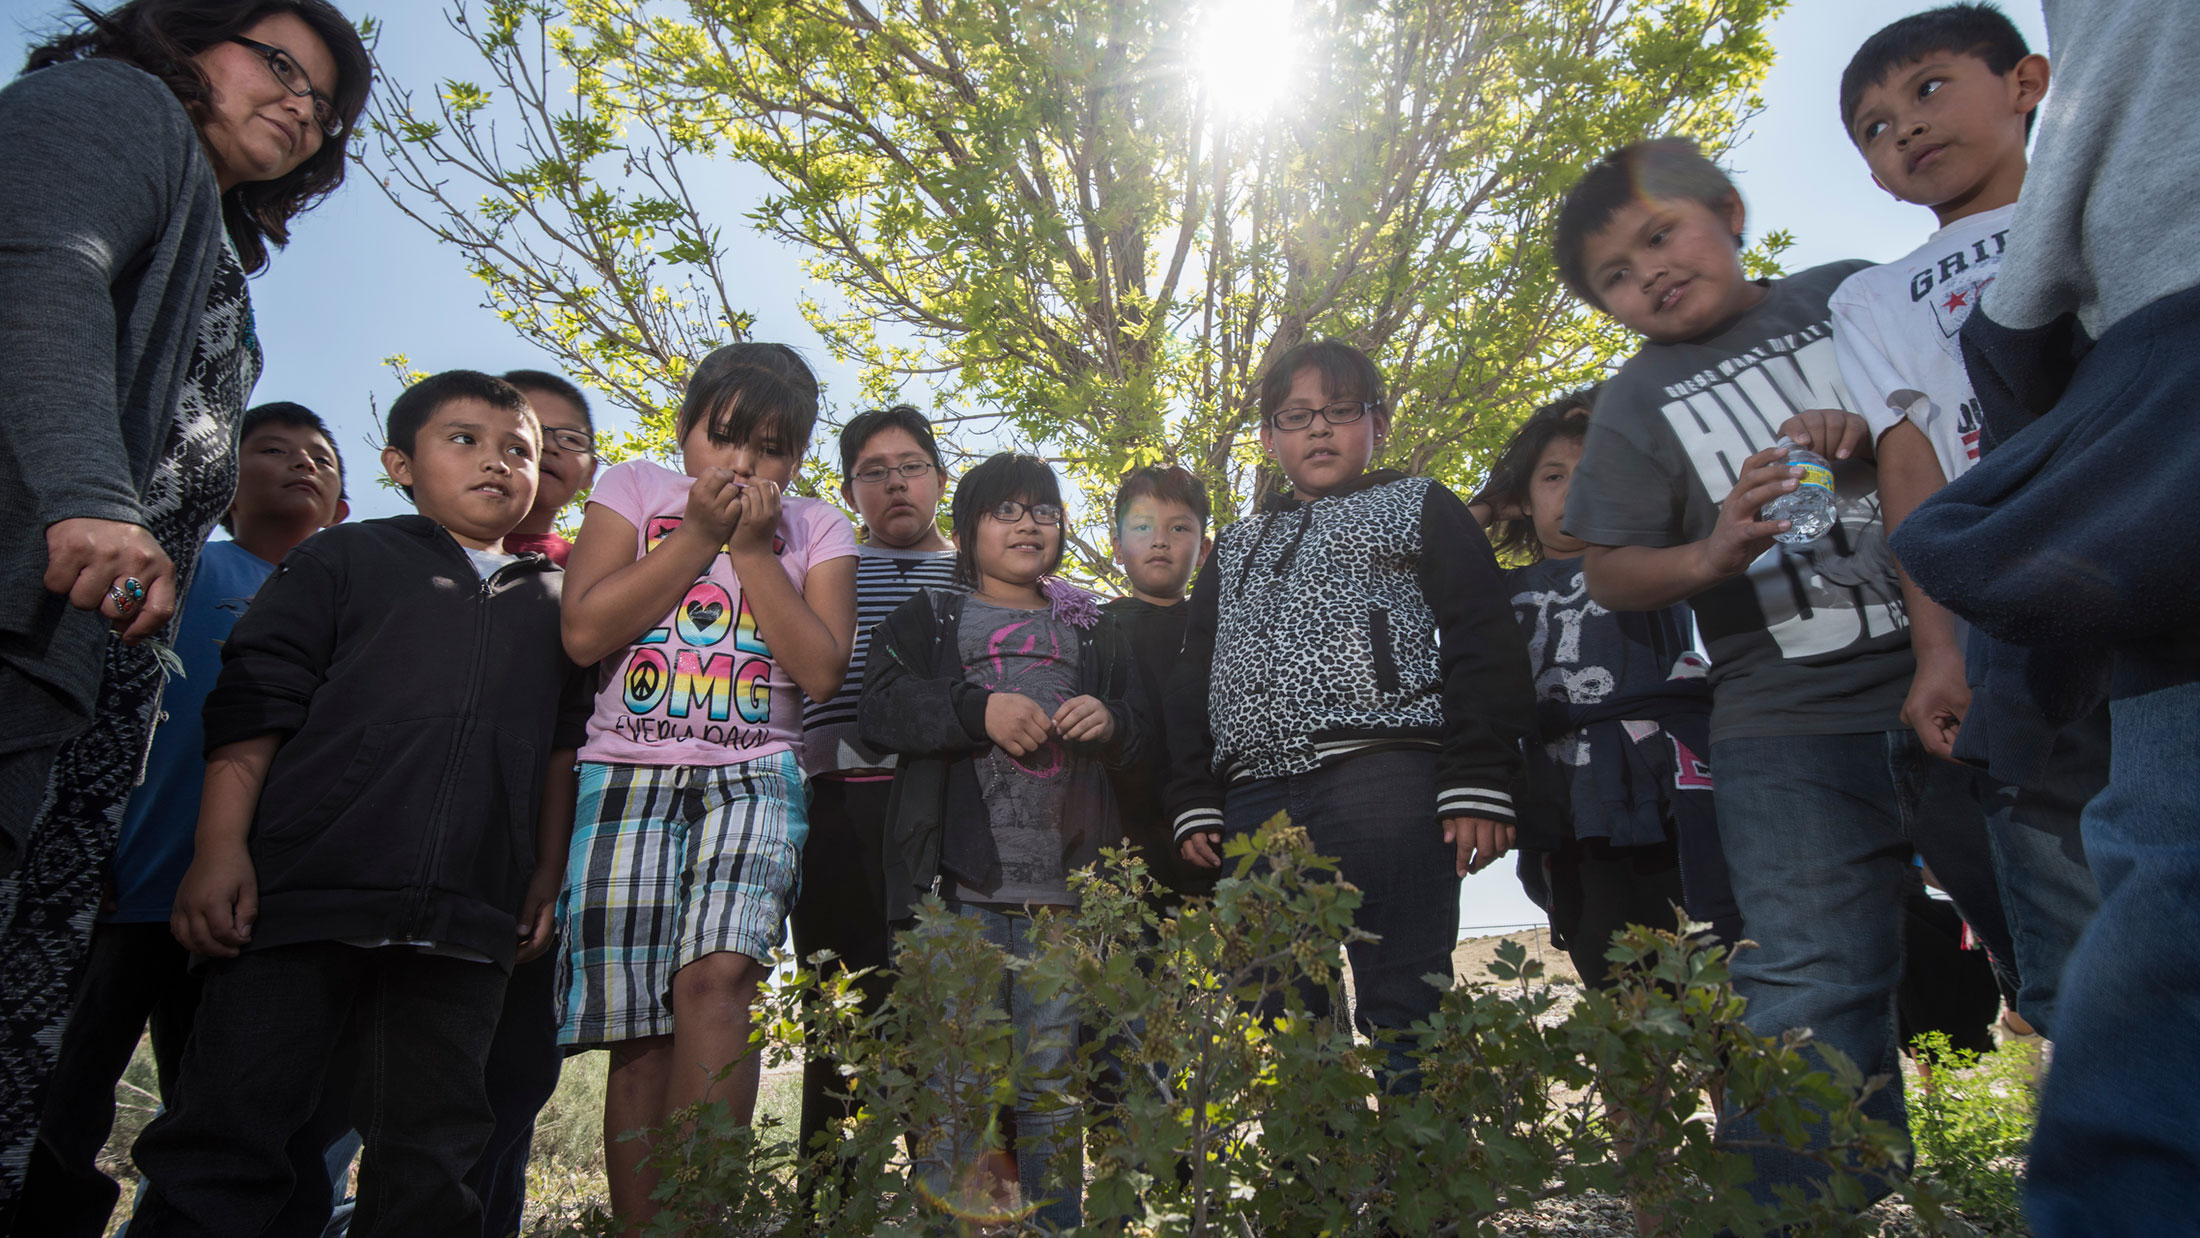 Studying Environmental Education helps build critical thinking skills